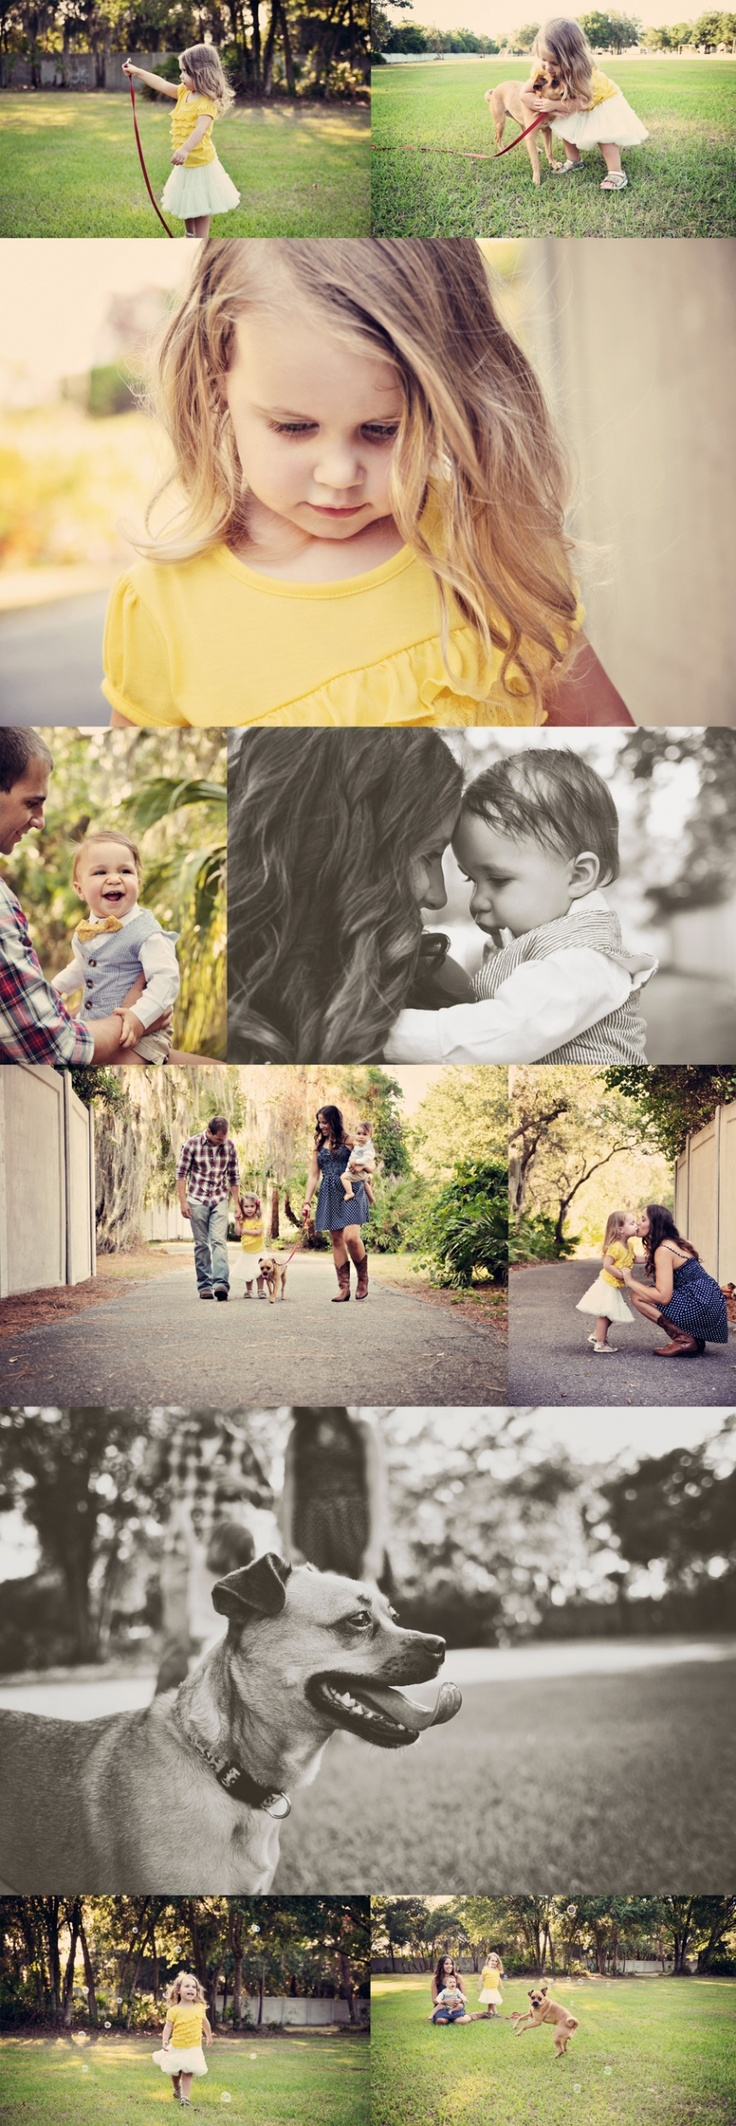 family sessionFamilies Pictures, Families Session, Families Photography, Families Ideas, Baby'S Families, Families Photos, Families Kids'S Baby, Families Portraits, Families Inspiration